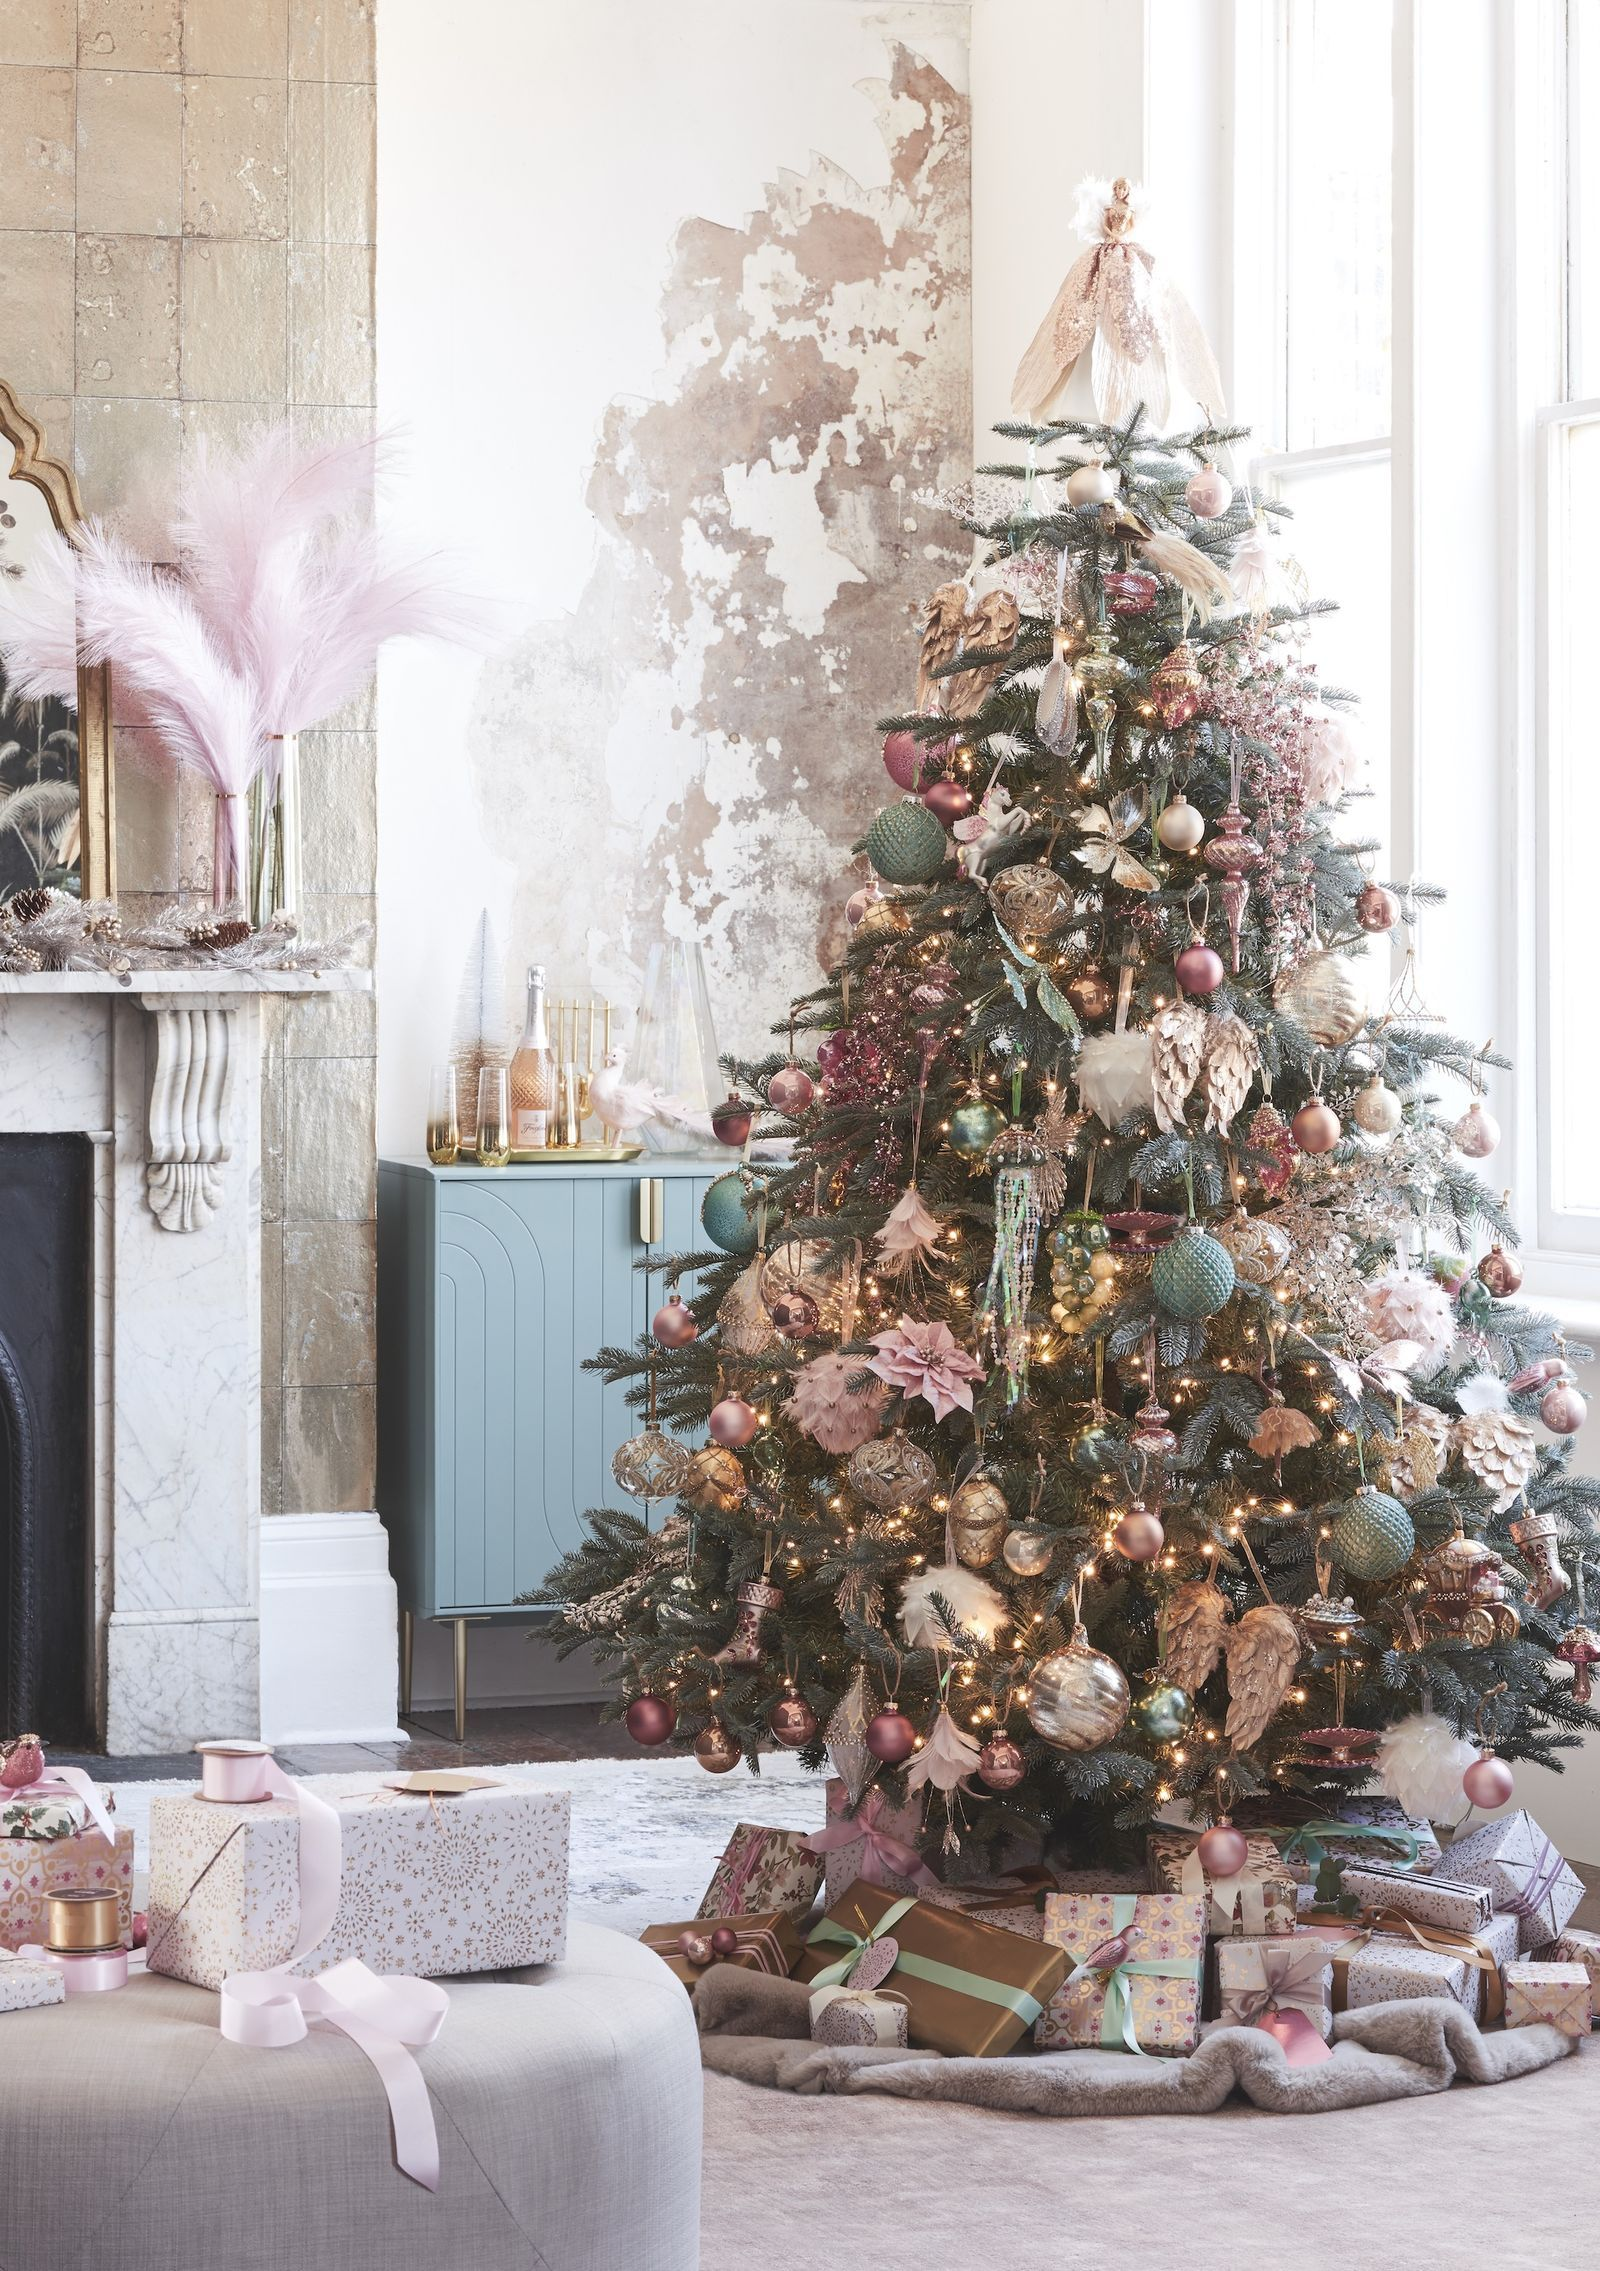 John Lewis Reveals Its Top Christmas Decorating Trends For 2020 In 2020 John Lewis Christmas Decorations John Lewis Christmas Unlit Christmas Trees